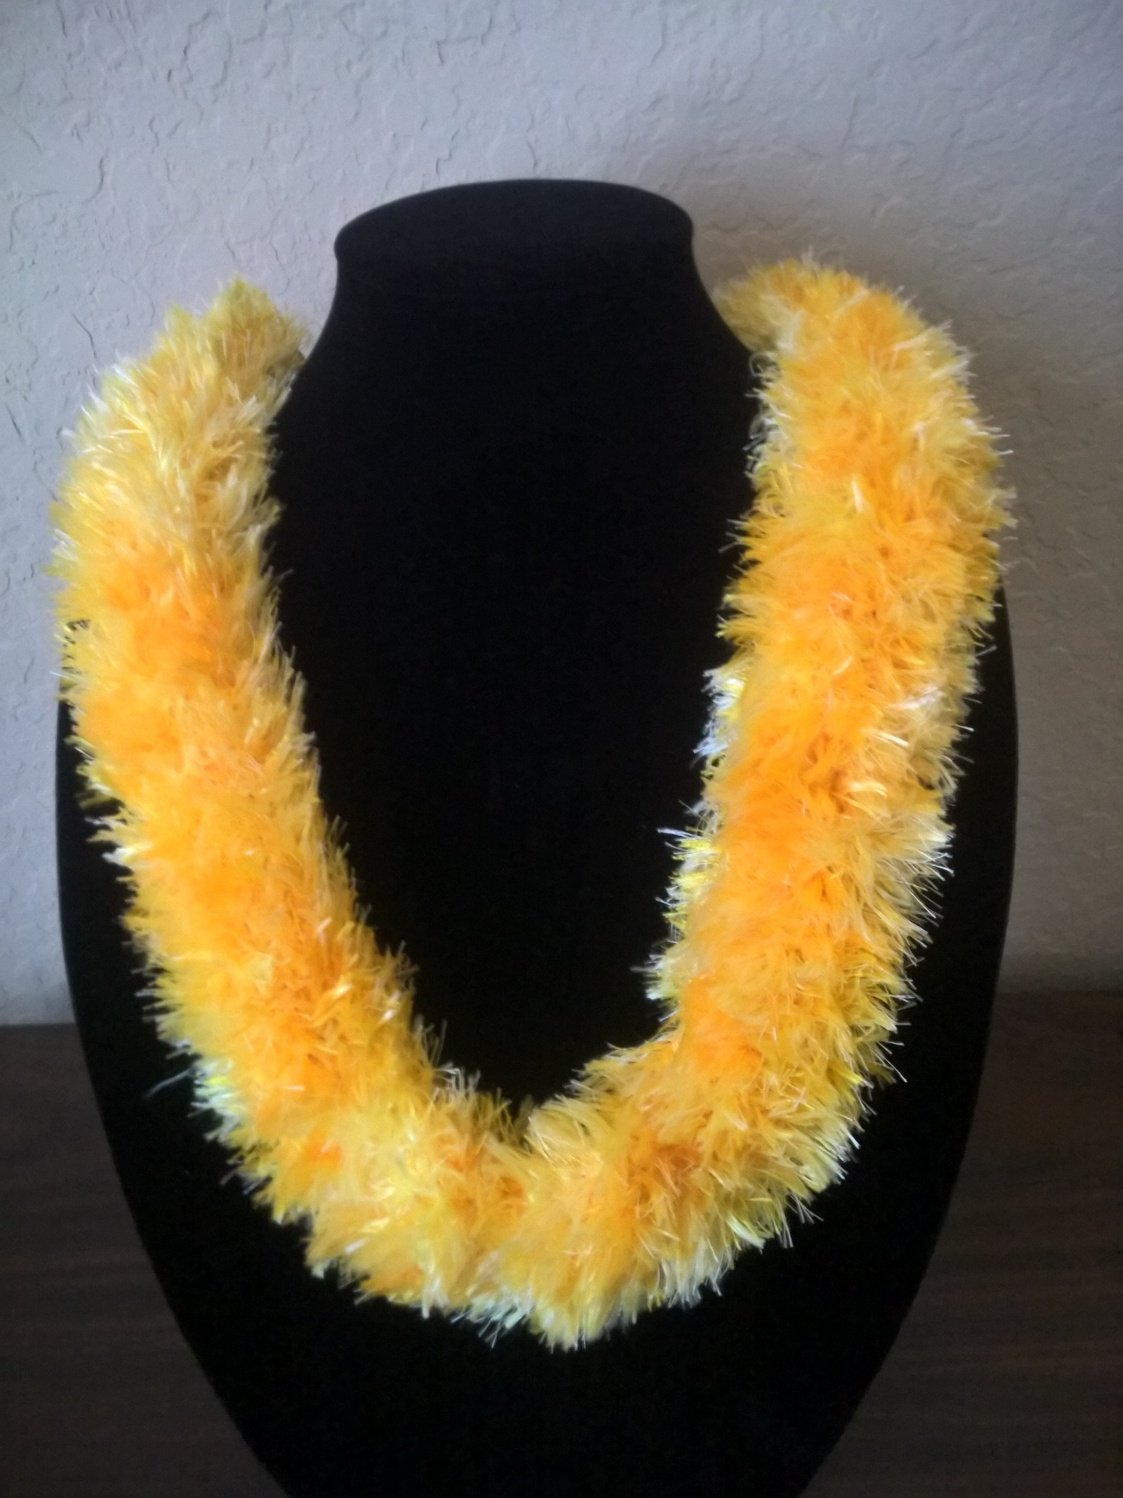 Hawaiian lei hat band knit w/ yellow multi-color eyelash yarn